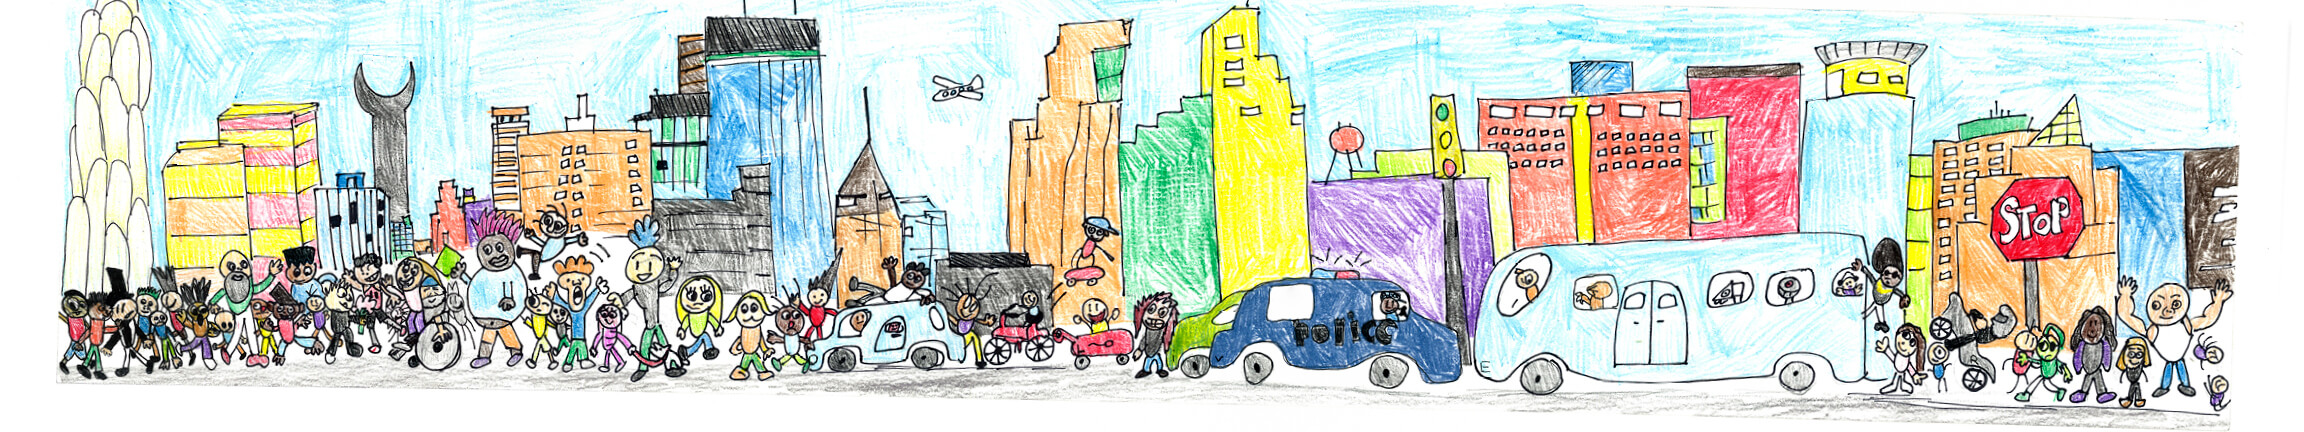 City-themed illustration by local elementary school students.